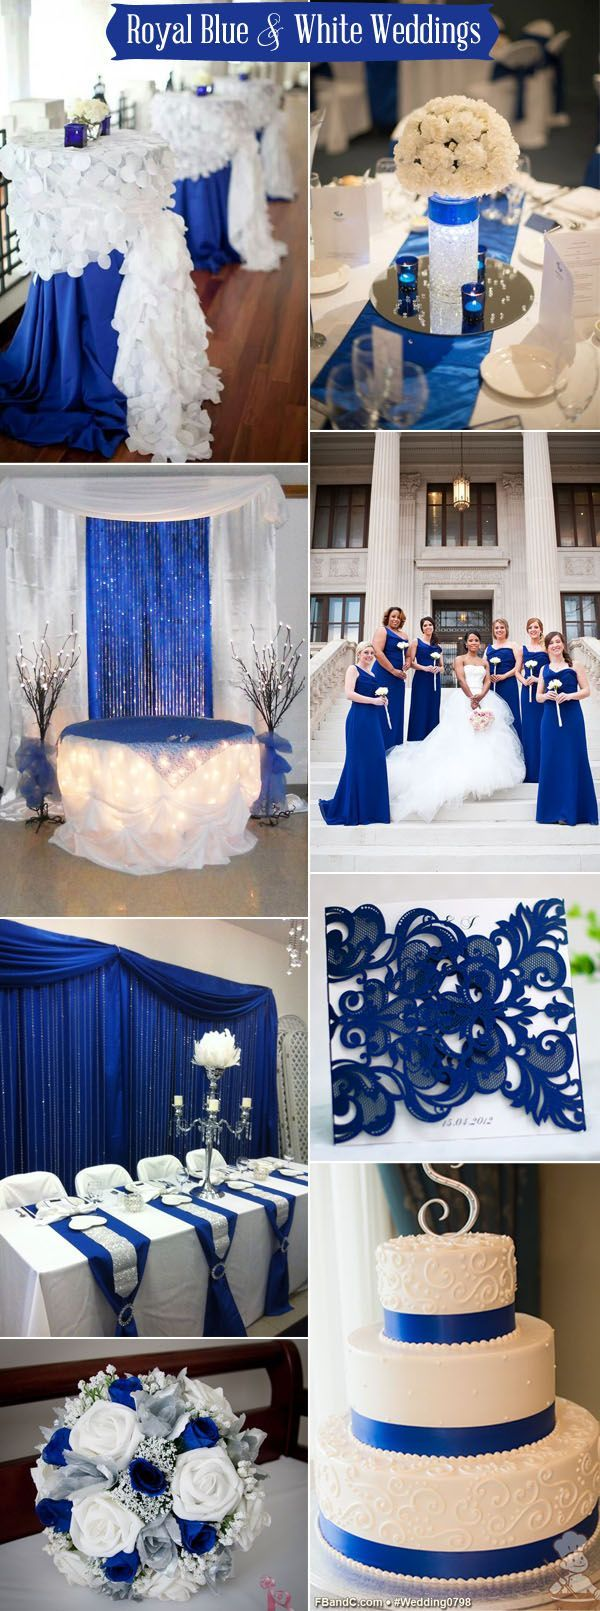 Wedding decor blue and white   Pretty Navy Blue and White Wedding Ideas  Blue wedding colors